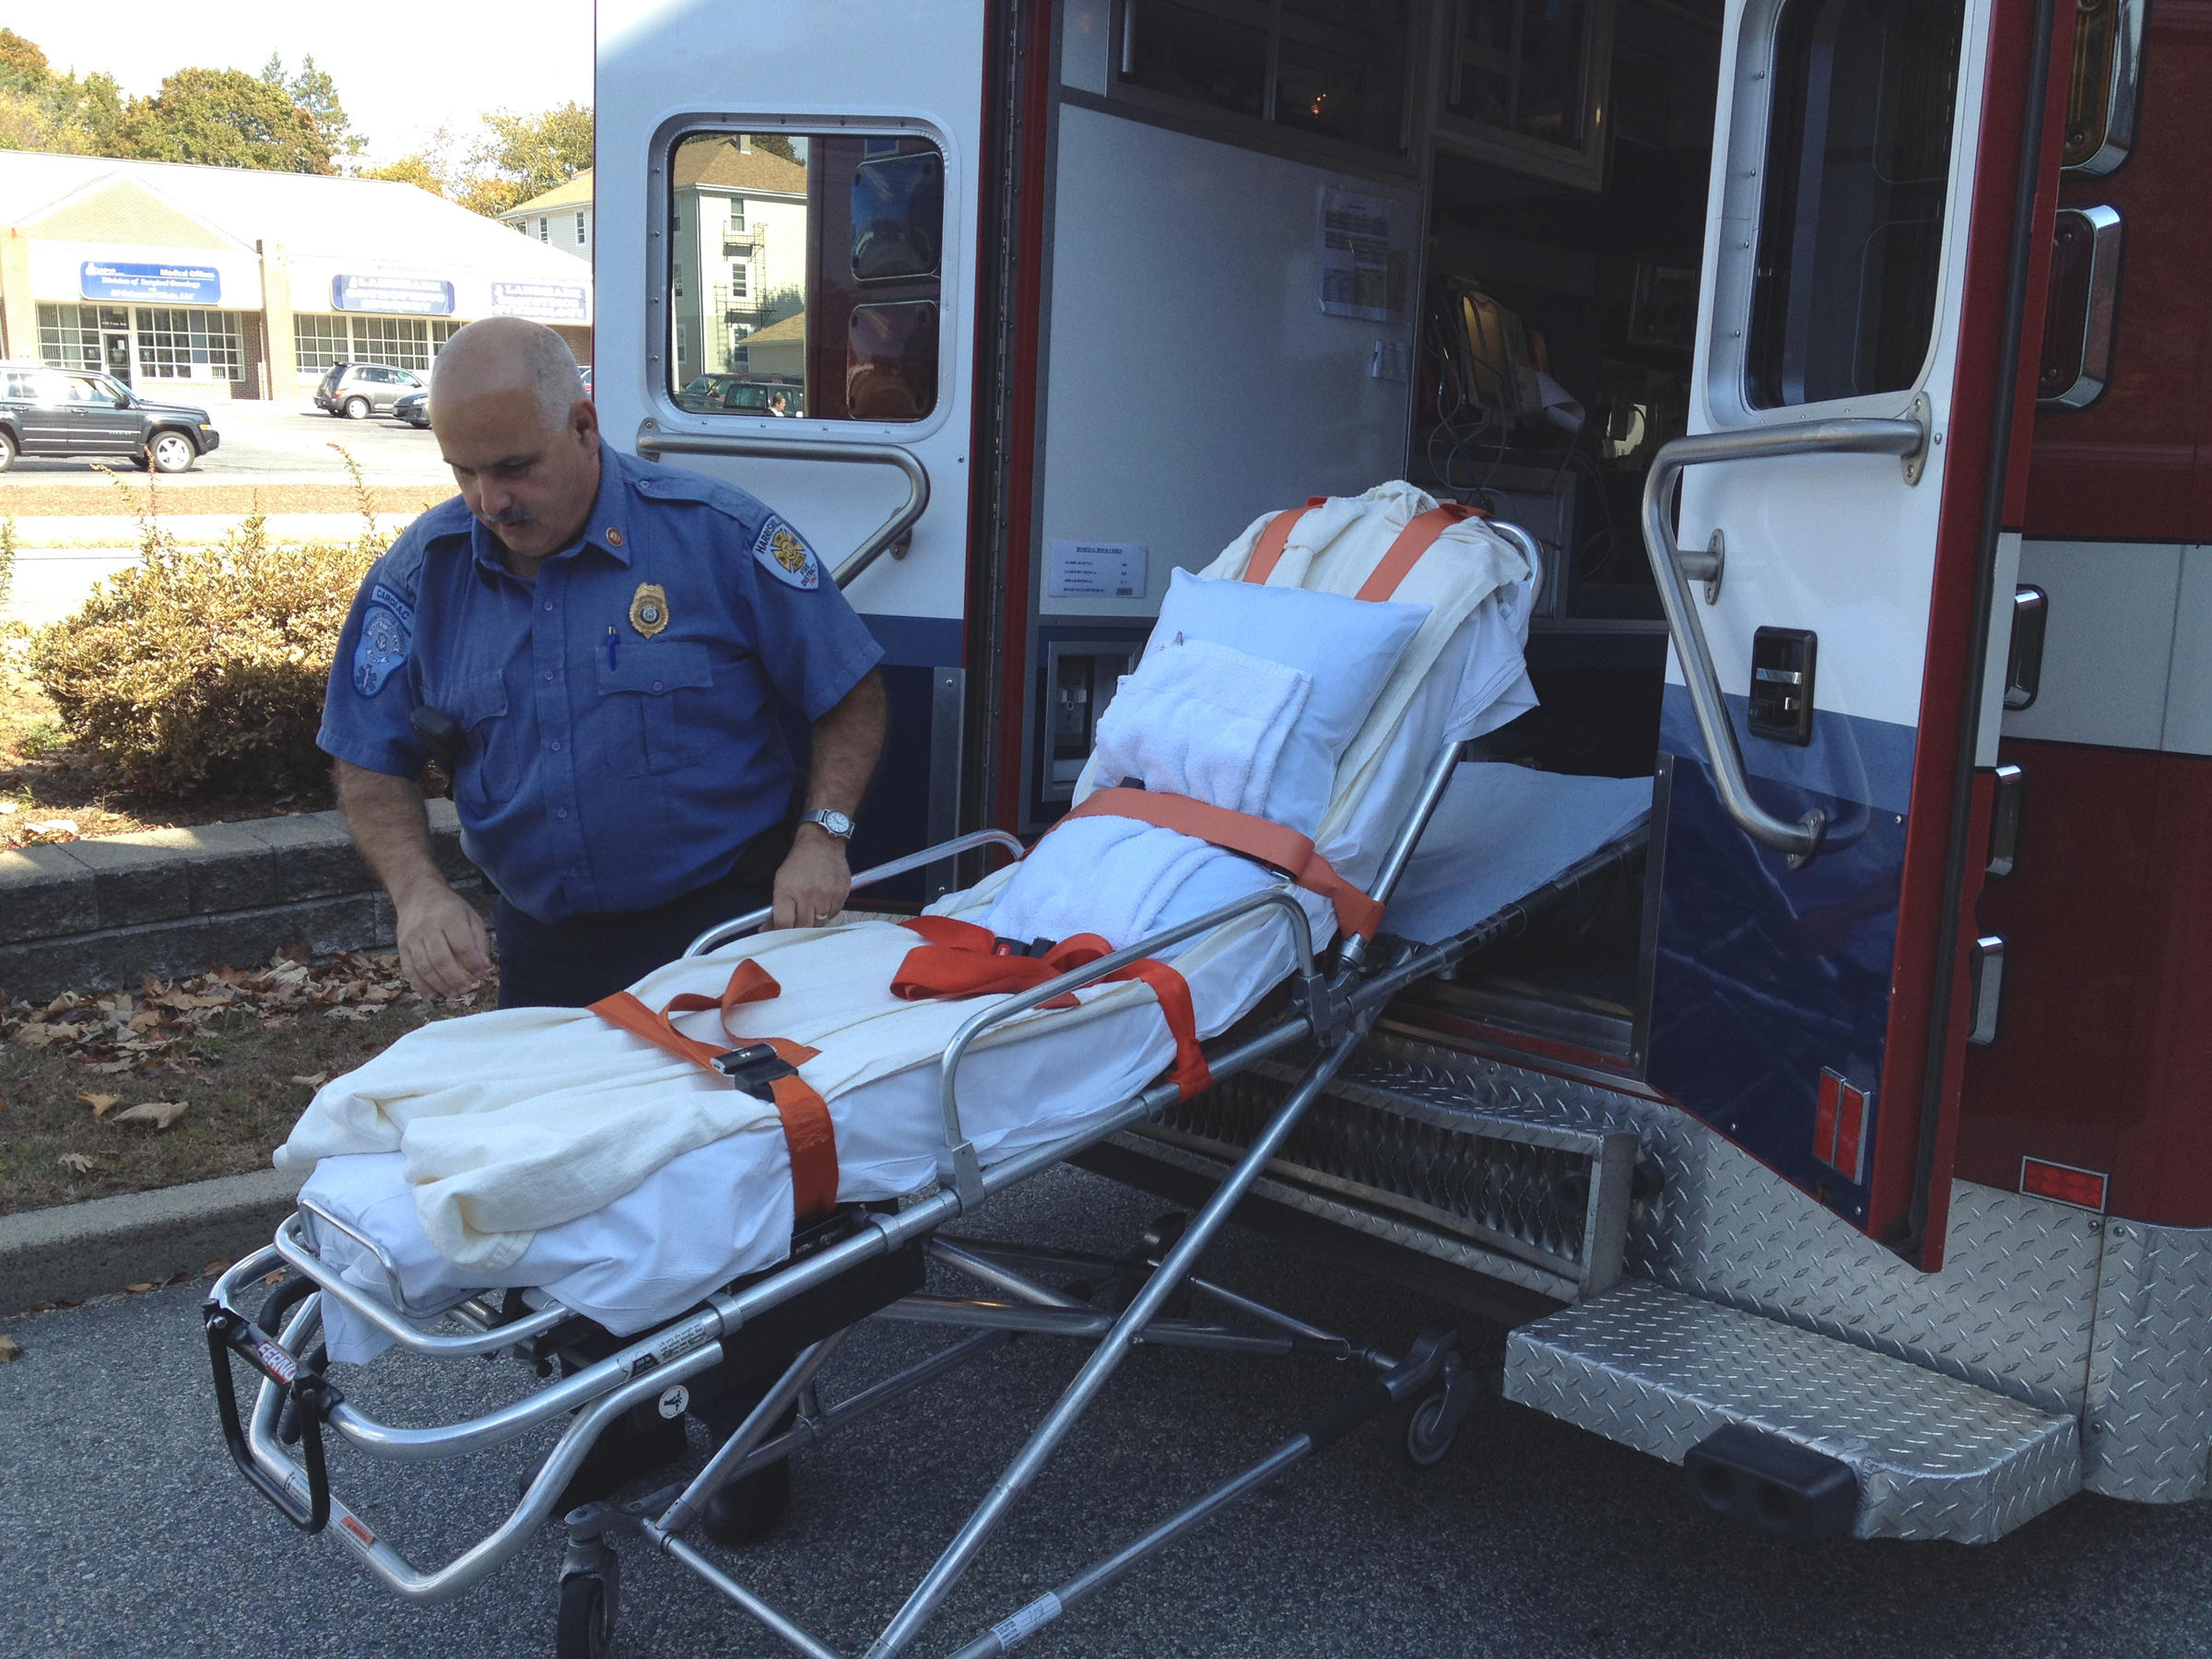 Emergency doctors cpr training for 911 operators could save lives credit ripr 1betcityfo Gallery